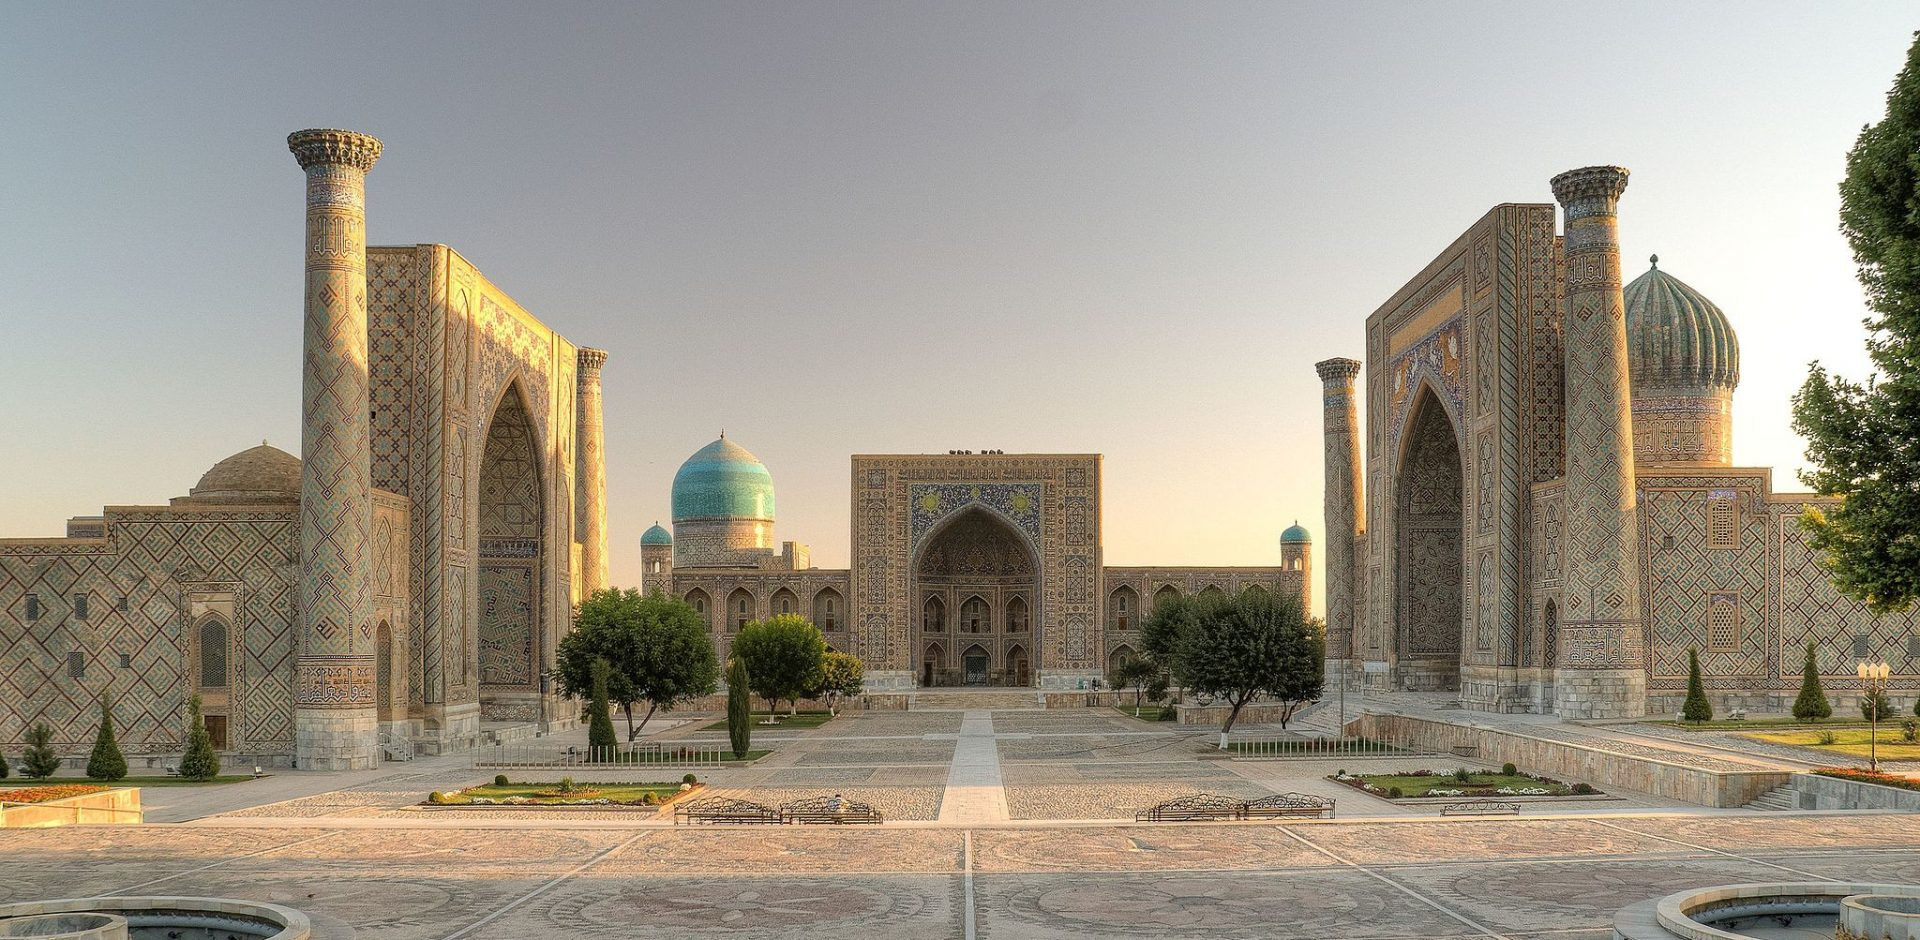 Registan square after sunset in Samarkand/Uzbekistan By Ekrem Canli via Wikimedia Commons